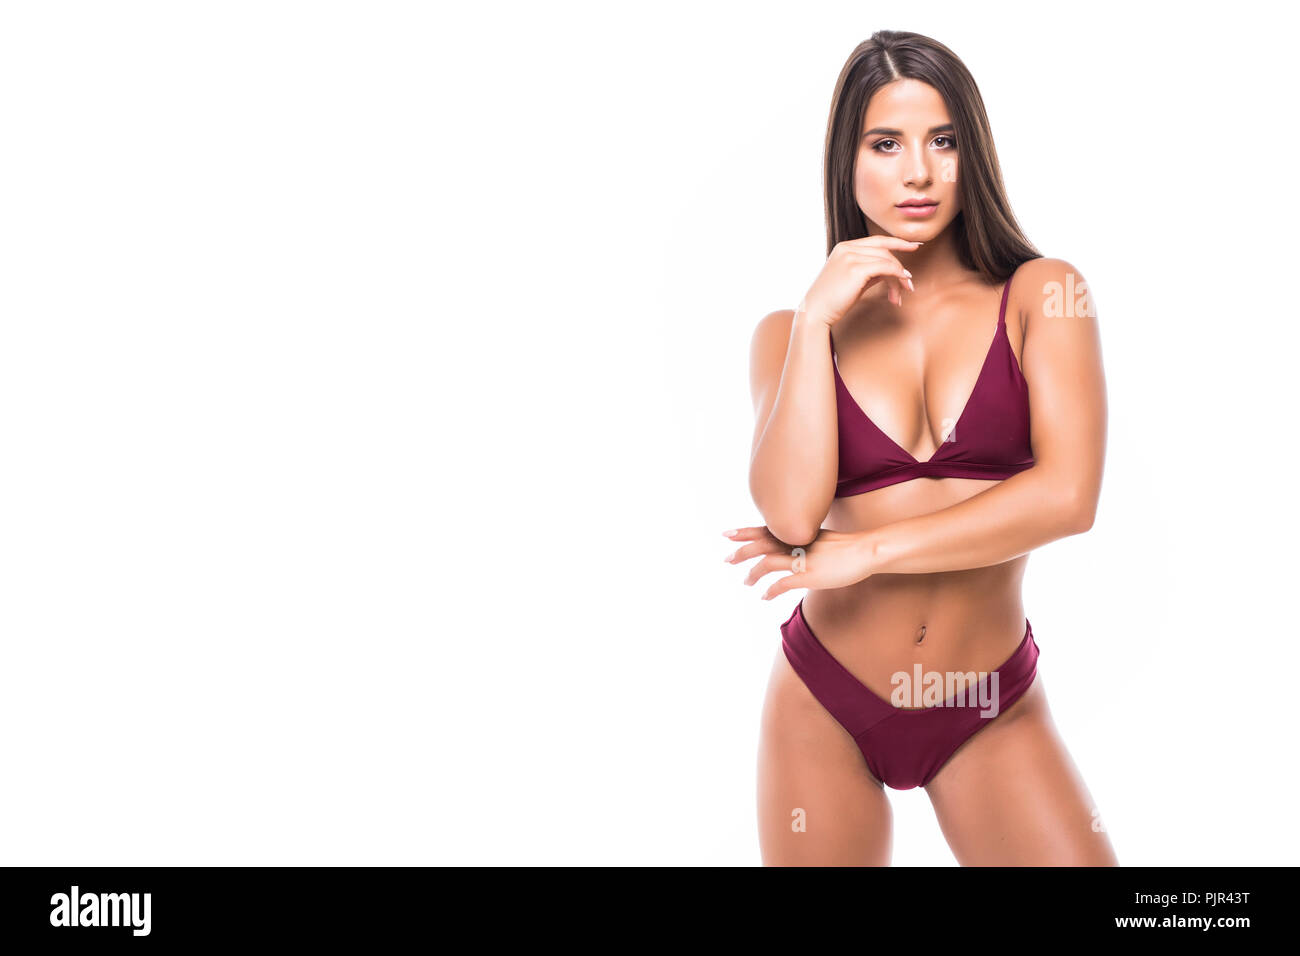 210d61bceb06c Young woman with slim perfect body in bikini isolated white background